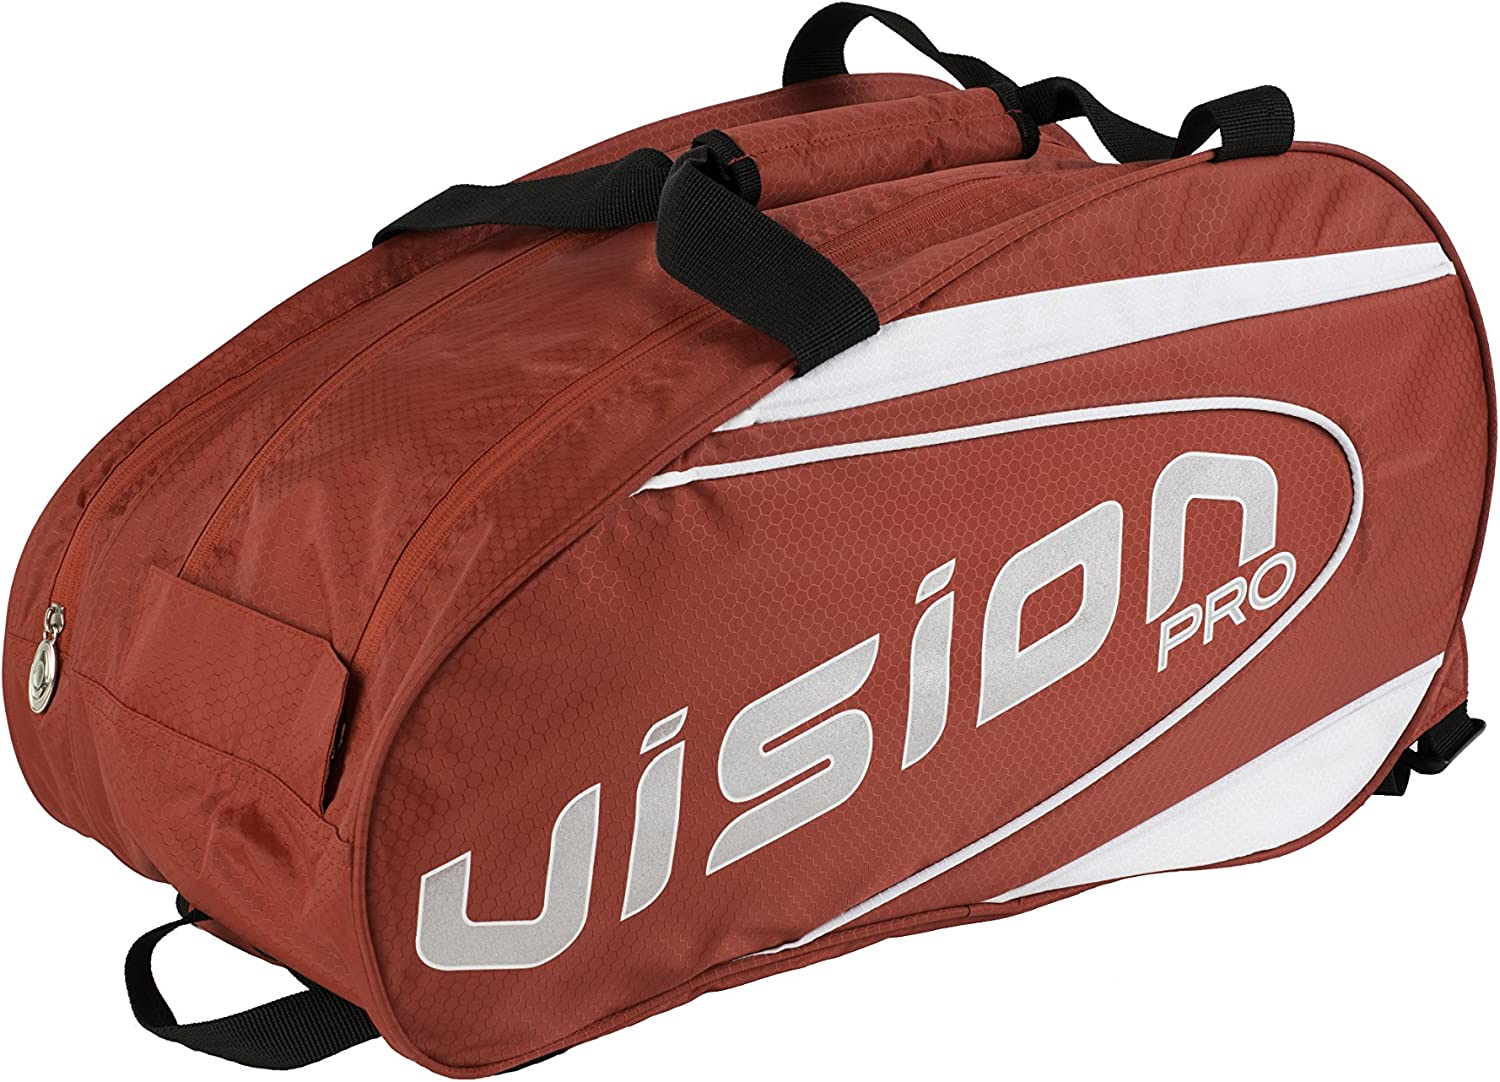 Vision Team 1.5 - Mochila para paletero, Color Rojo: Amazon.es ...